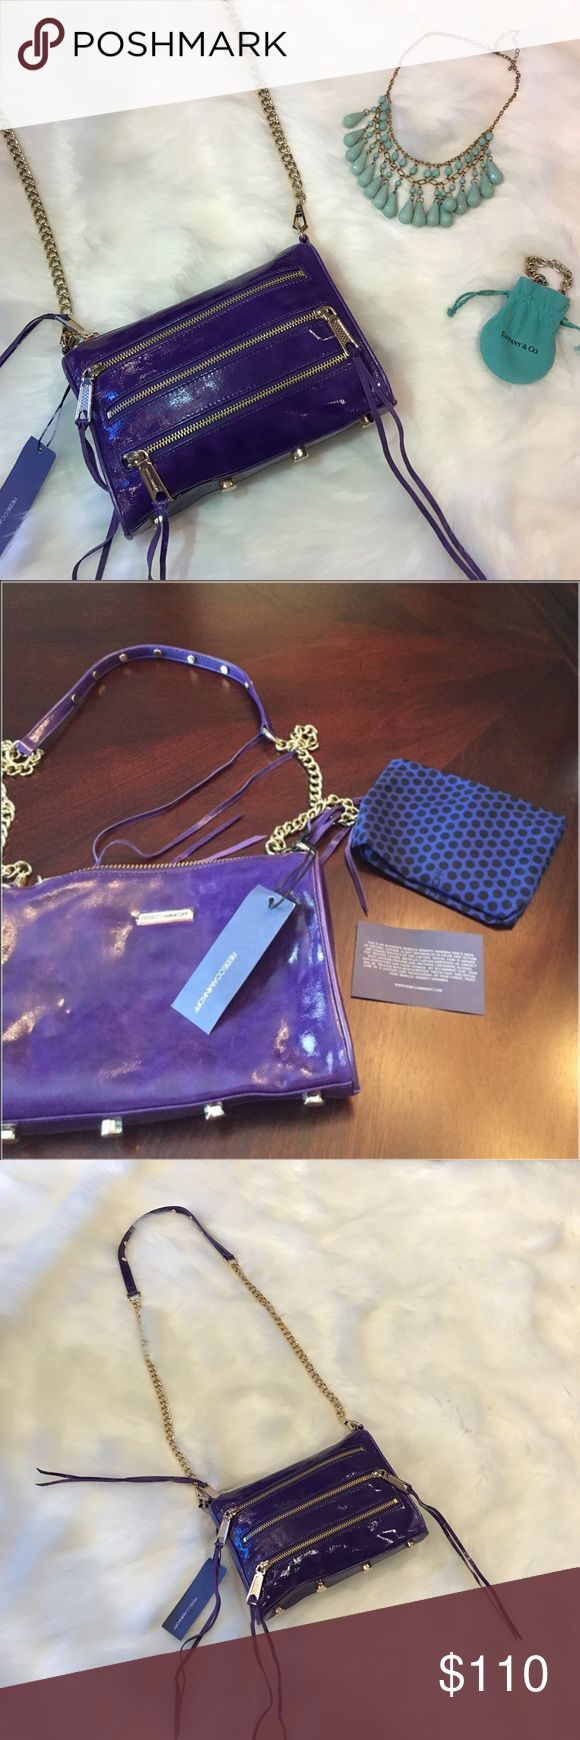 NWT Rebecca Minkoff Mini 5 Zip Purple Purse BRAND NEW! 100% Authentic! Rebecca Minkoff Mini Five Zip Crossbody Bag! Beautiful purple color called grape! Only the bag and dust bag is included in purchase! Retail price is $195! NO TRADES! Make an offer 😊 Rebecca Minkoff Bags Crossbody Bags